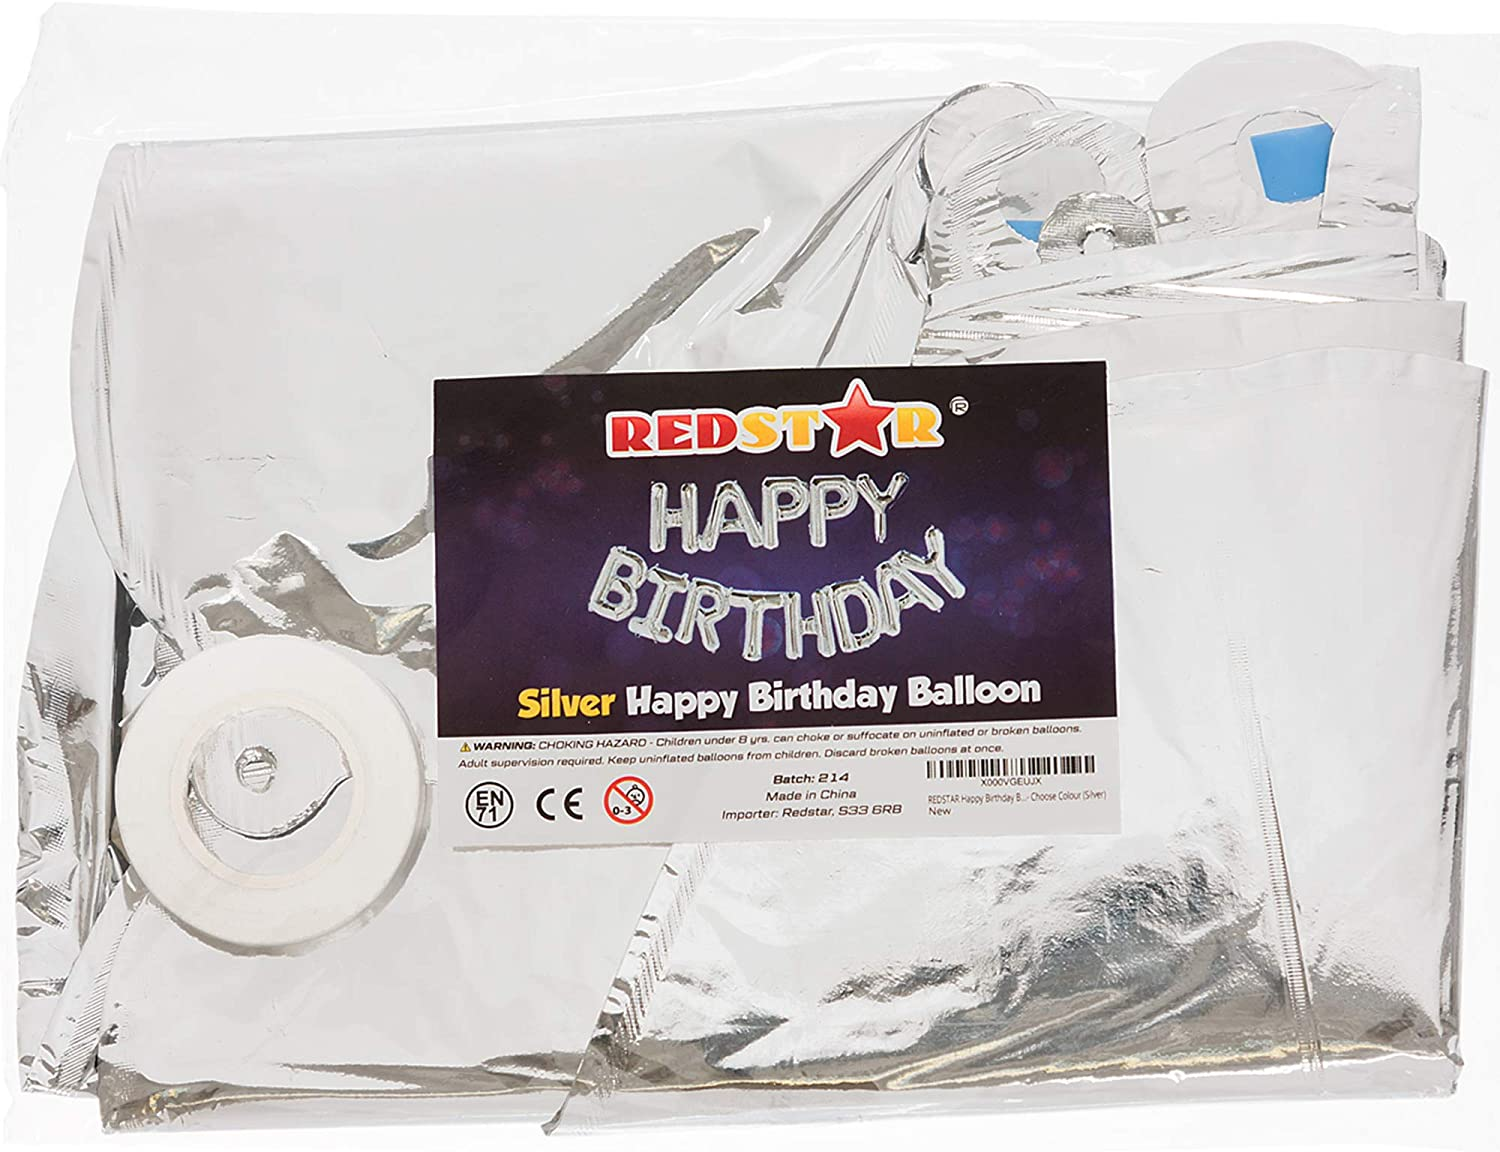 Gold REDSTAR Happy Birthday Balloons Choose Colour Self Inflating 16 Large Foil Banner Balloons